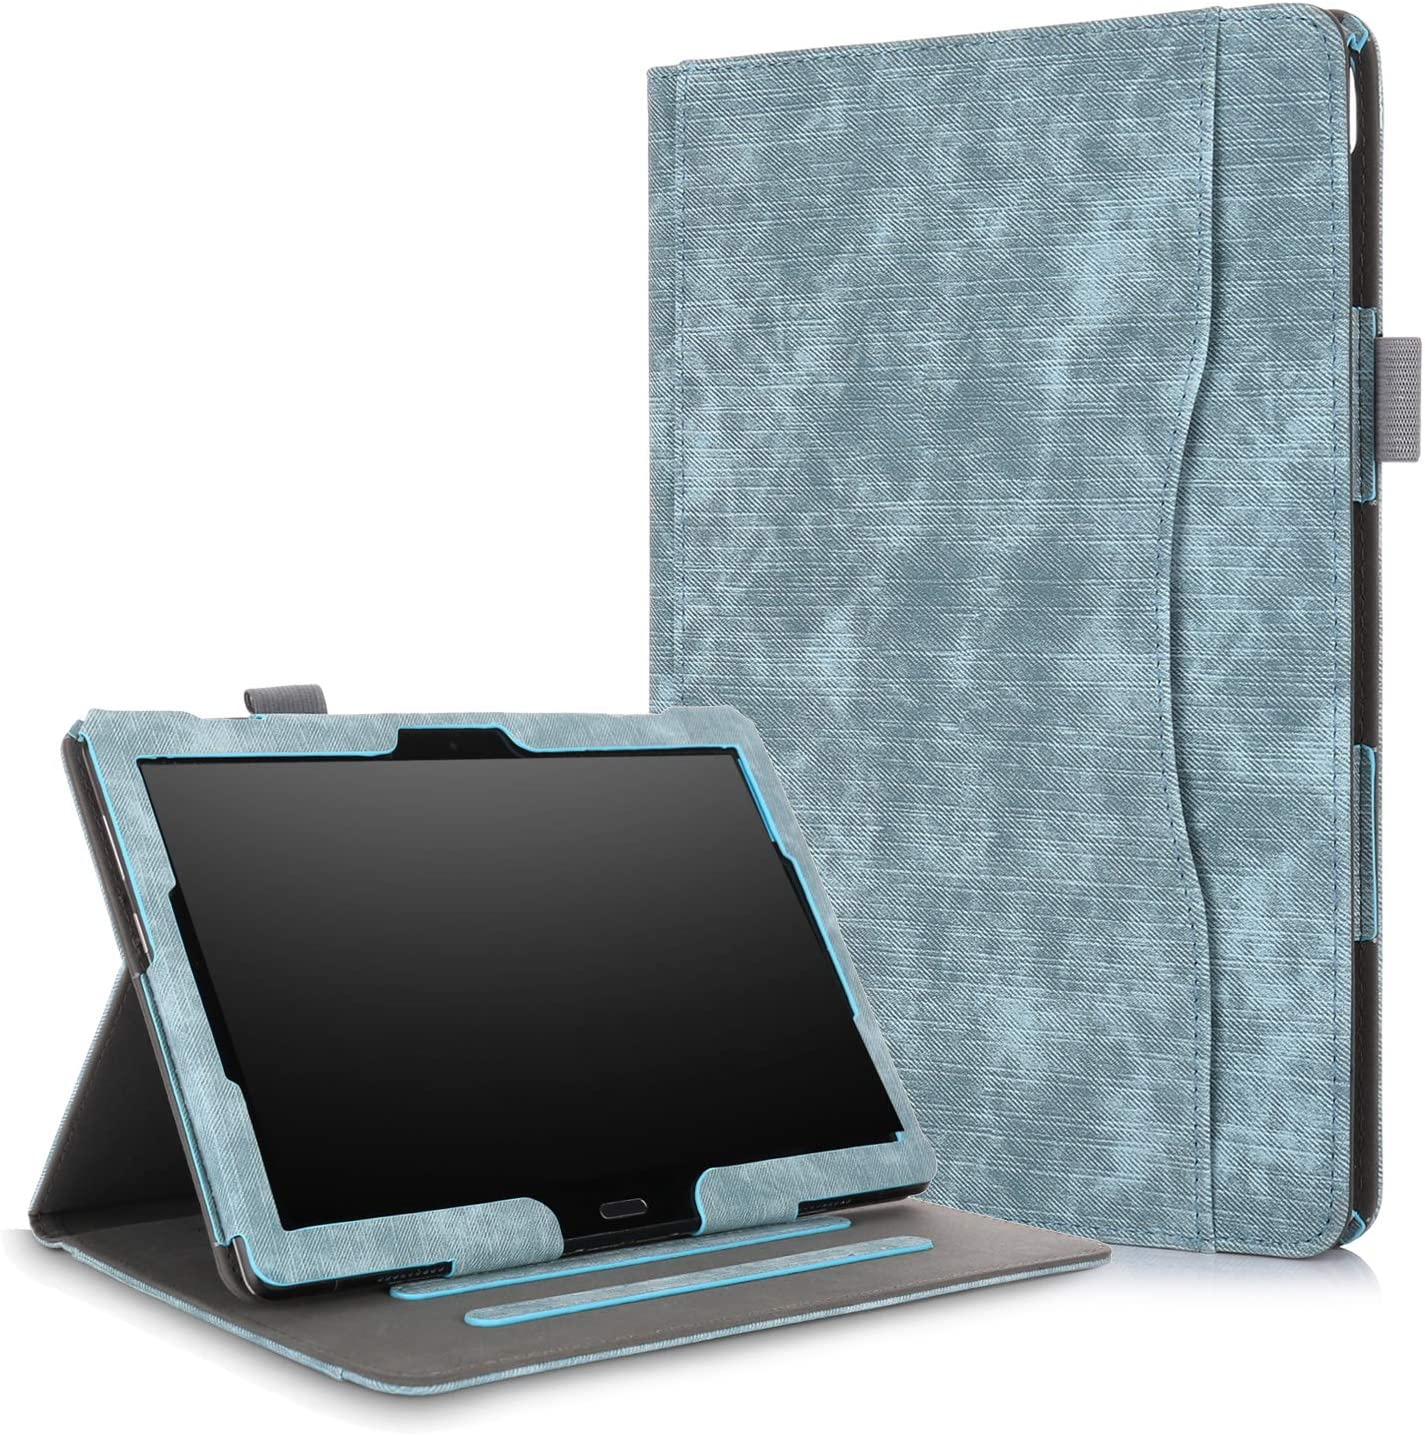 XBE Multifunctional Case for Lenovo Tab M10 TB-X605F TB-X505F / P10 X705F with Multiple Viewing Angles and Hand Holder , Grey-green